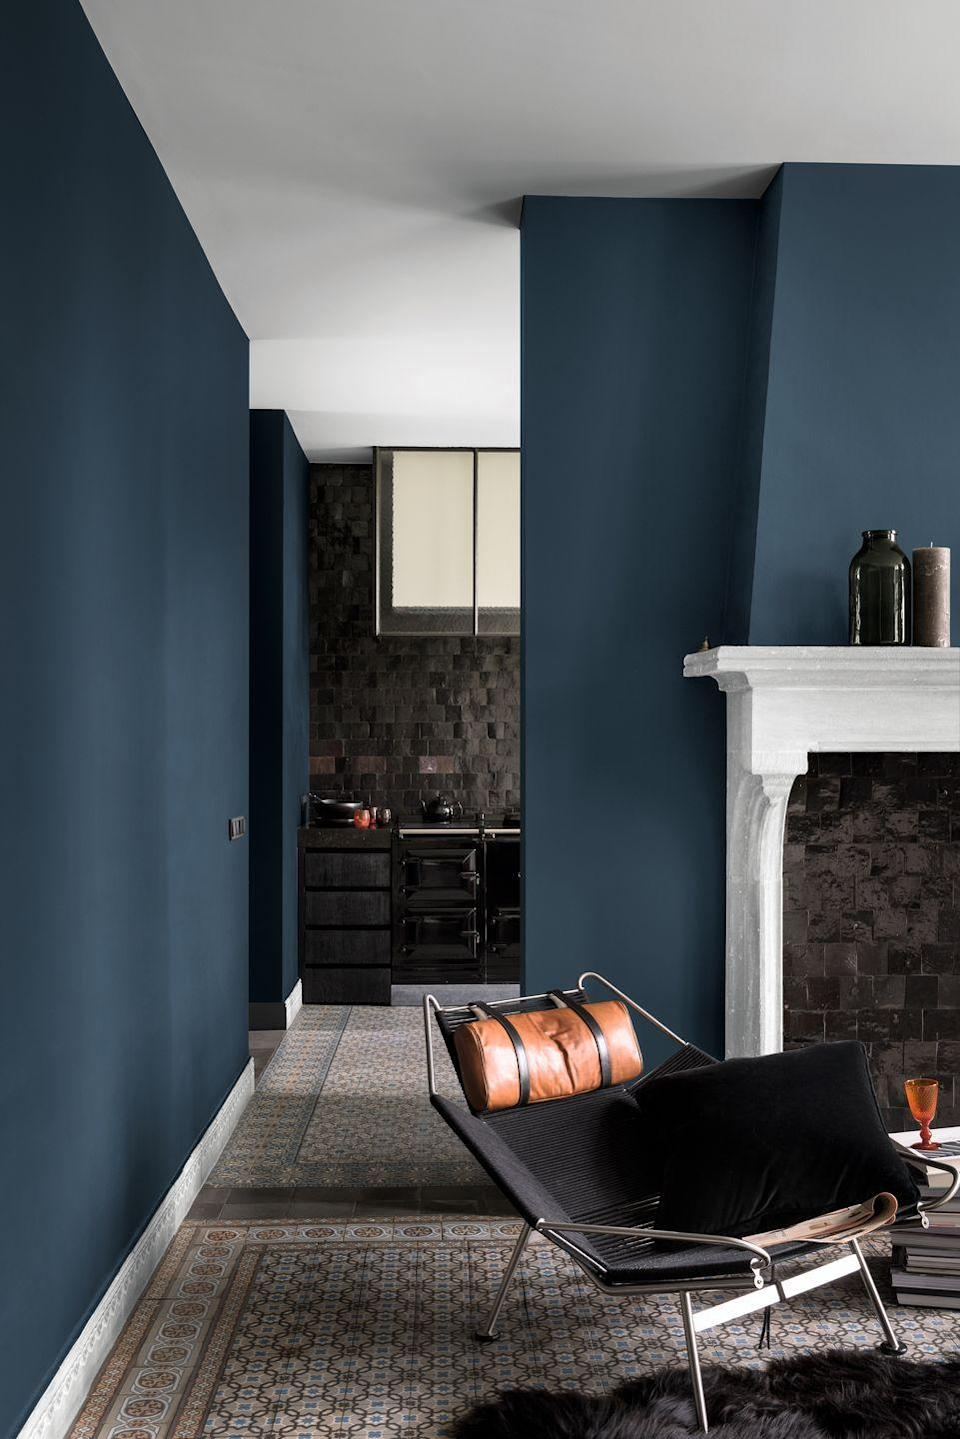 """<p>'Before the TV became commonplace in many modern living rooms the focal point of the room was always the fireplace. White fireplaces have become more popular recently, as seen in 12 per cent of top posts, as they offer another point of contrast to other colours that may be in the room,' Dulux says. </p><p>A well placed fireplace alone can be enough to make any wall a feature wall, but paired with bold, bright colours and <a href=""""https://www.housebeautiful.com/uk/decorate/looks/g19619913/stylish-ways-to-decorate-with-pattern/"""" rel=""""nofollow noopener"""" target=""""_blank"""" data-ylk=""""slk:patterns"""" class=""""link rapid-noclick-resp"""">patterns</a> you can really be sure to bring that focal point right back to its former glory.<strong><br><br>Follow House Beautiful on <a href=""""https://www.instagram.com/housebeautifuluk/"""" rel=""""nofollow noopener"""" target=""""_blank"""" data-ylk=""""slk:Instagram"""" class=""""link rapid-noclick-resp"""">Instagram</a>.</strong></p>"""